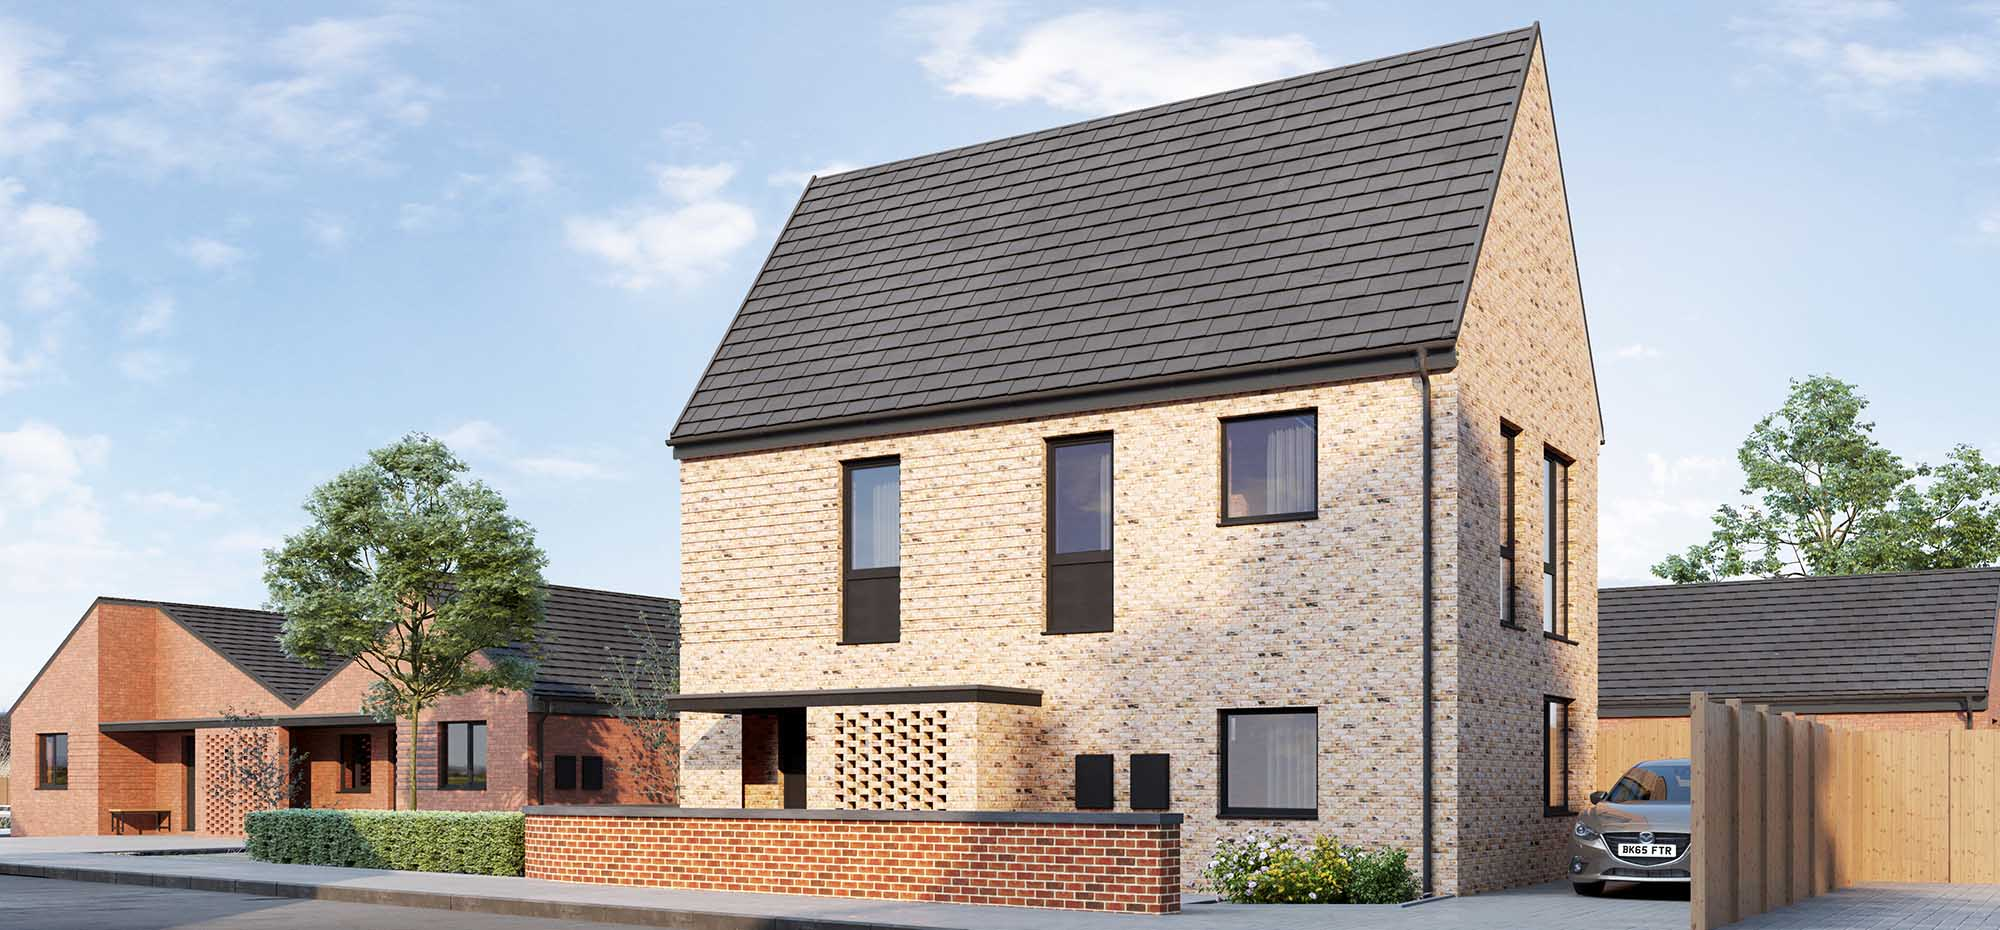 This image shows an external view of the Sundew house from Shape Homes York.